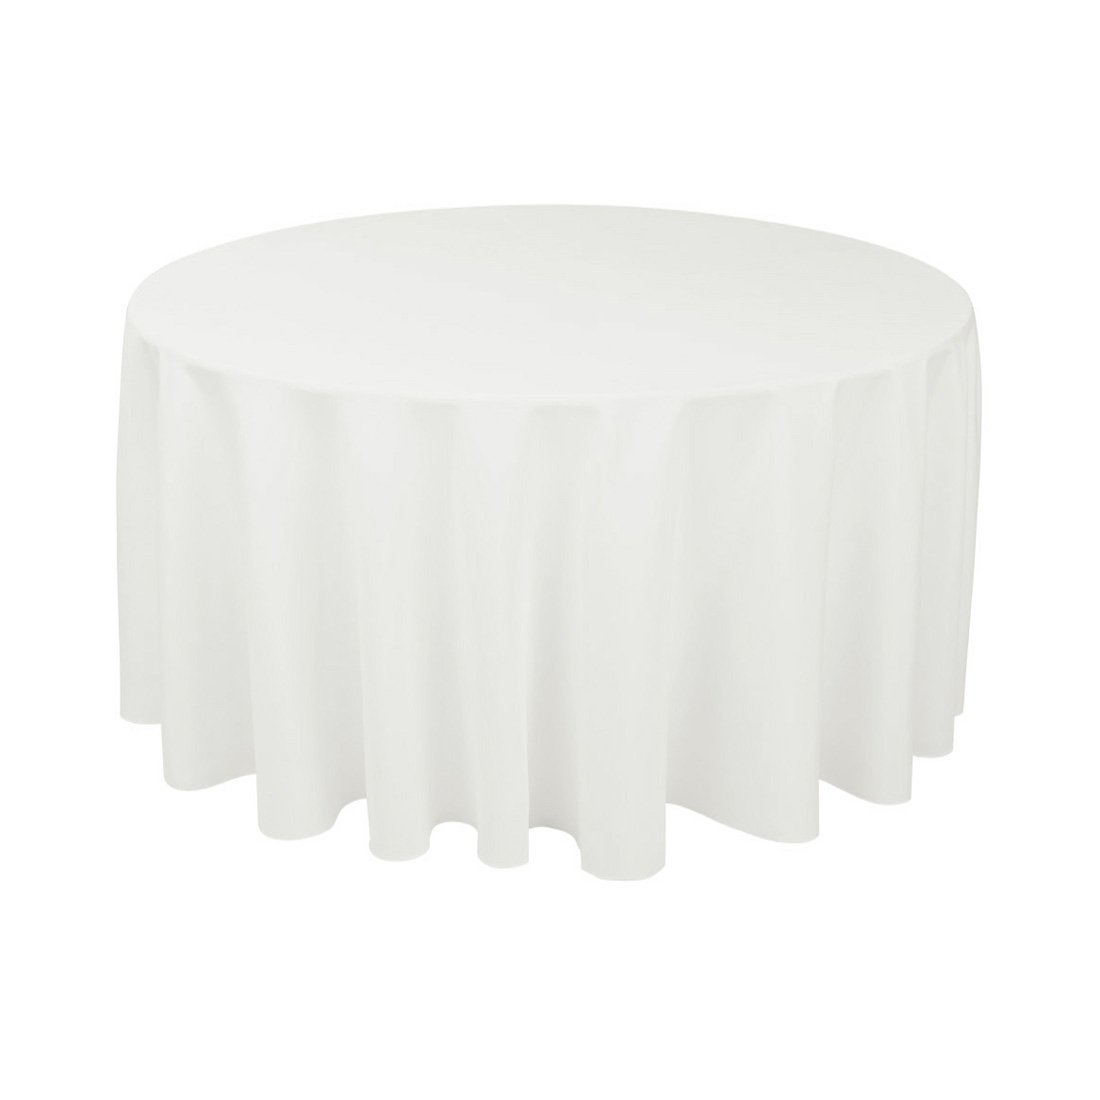 "Craft & Party Polyester Tablecloth 120"" Round (White)"